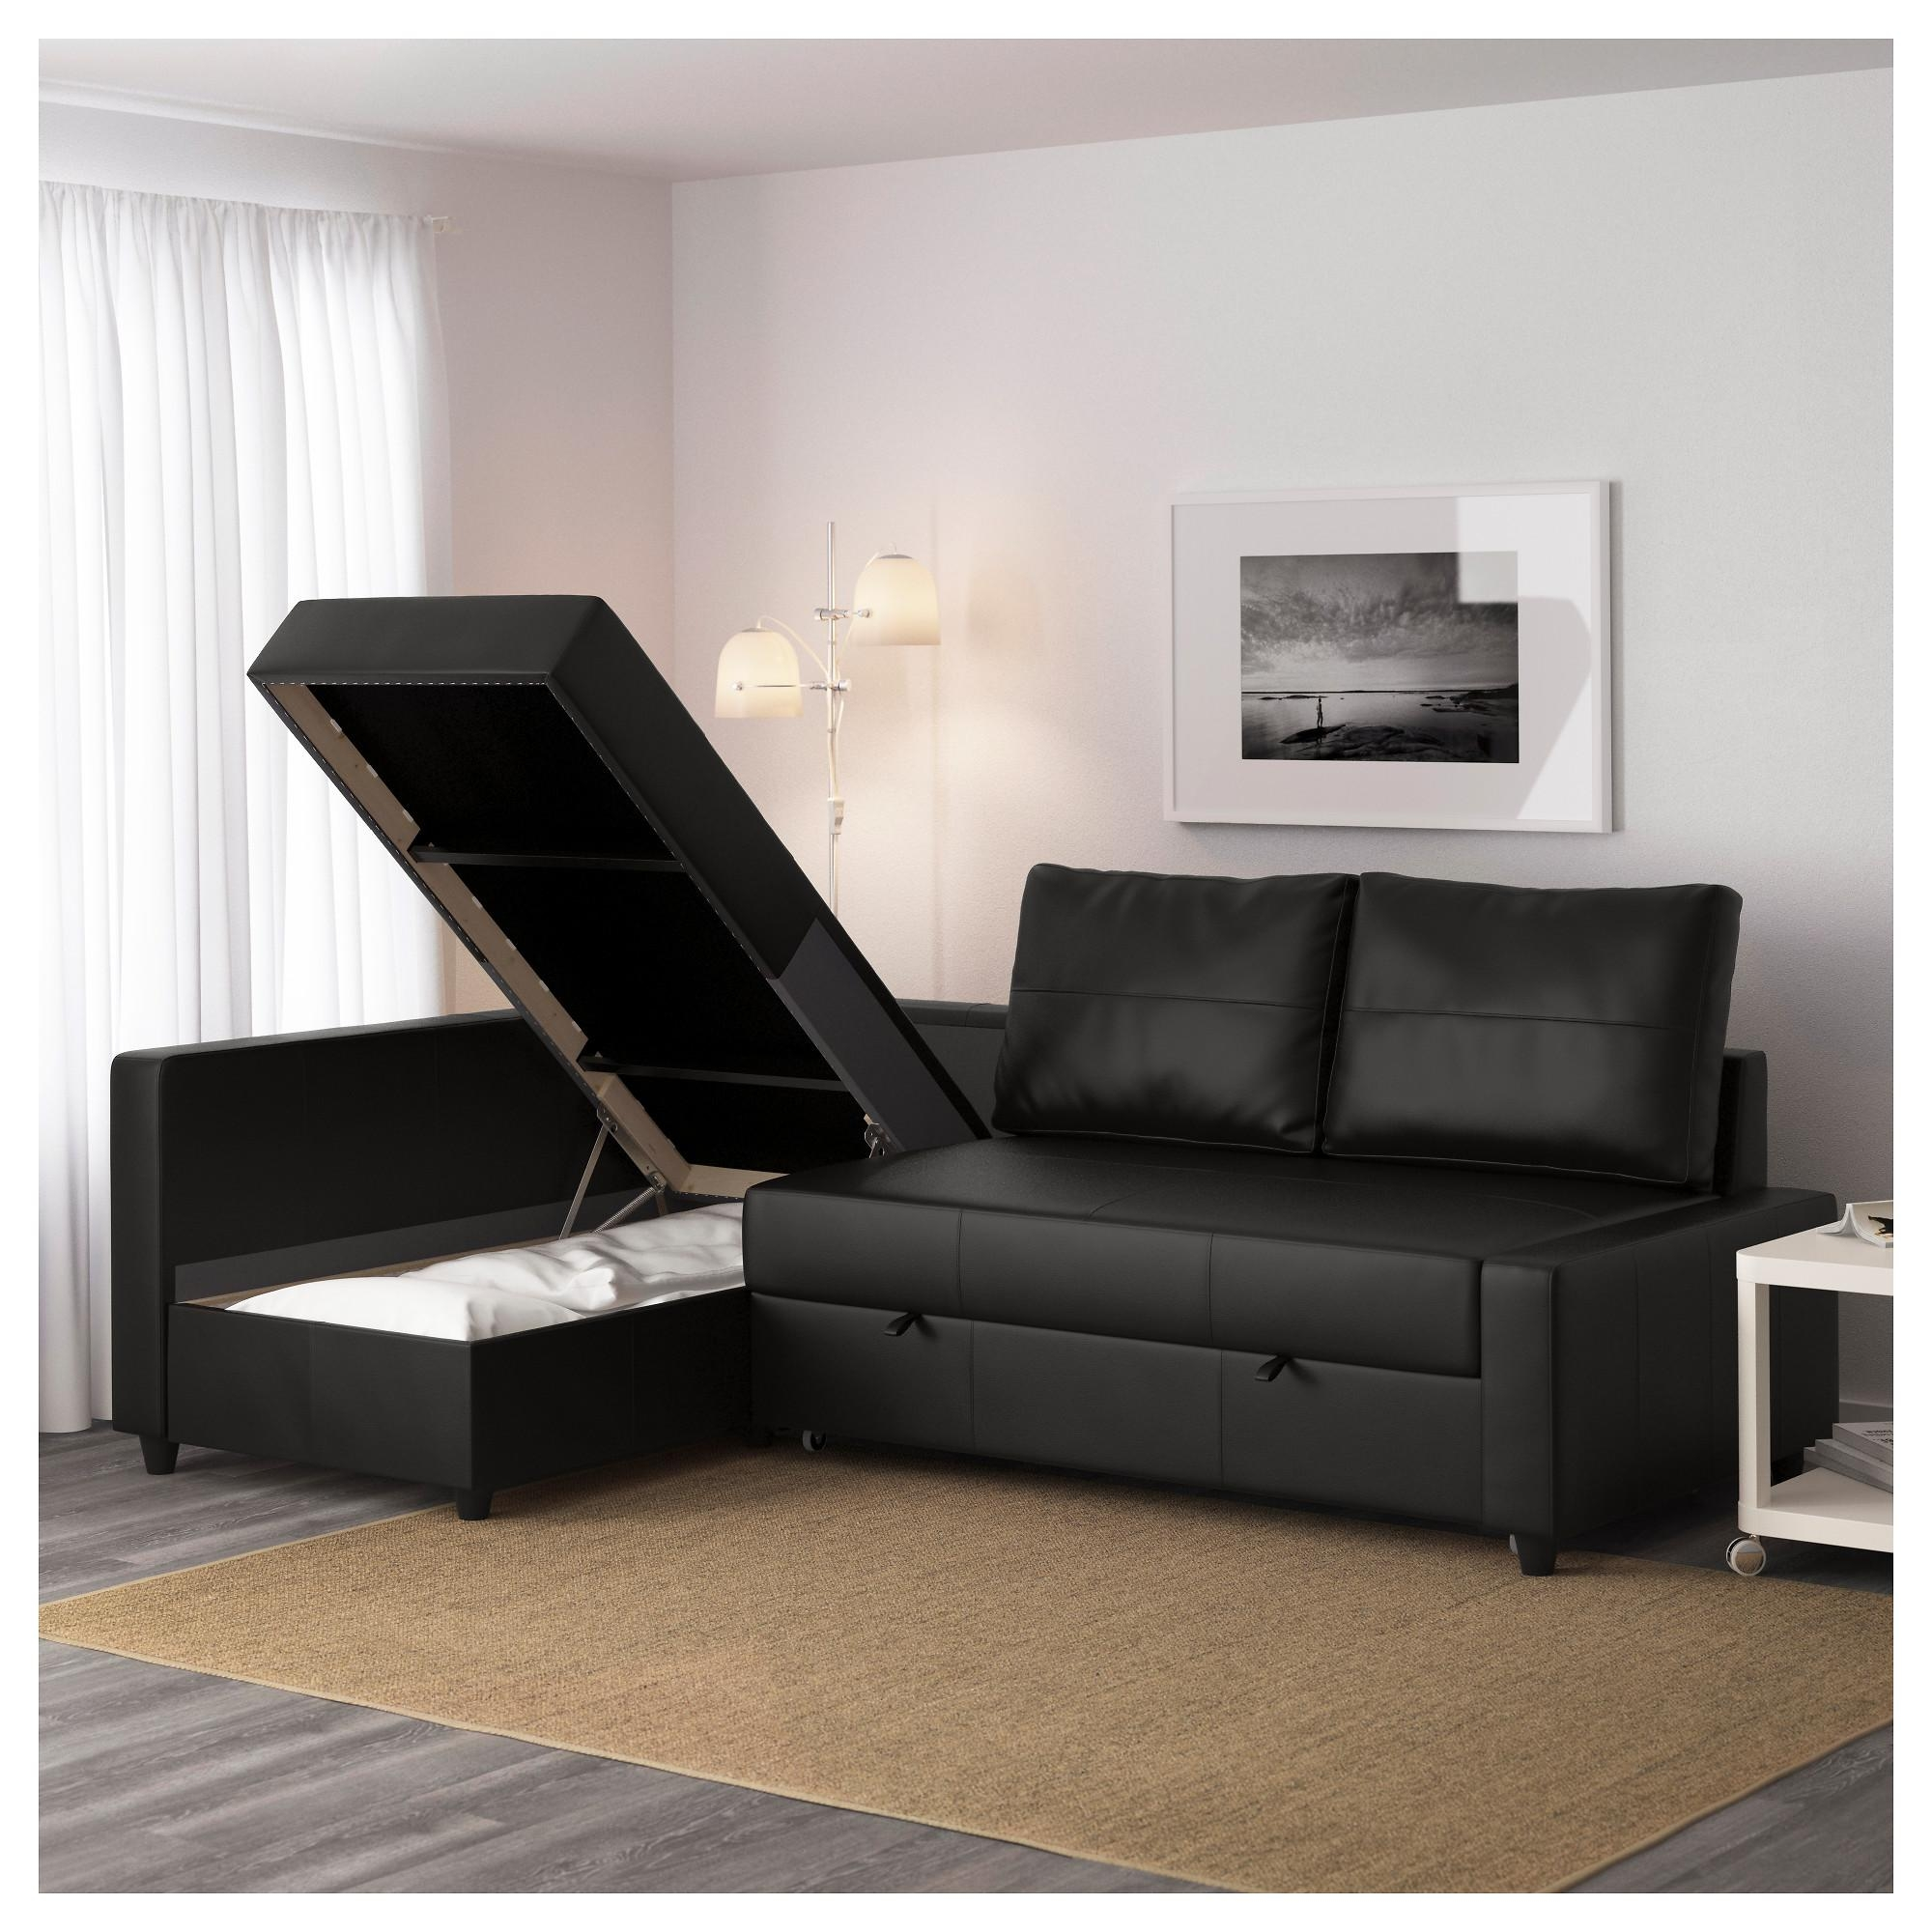 20 Best Target Couch Beds  Sofa Ideas